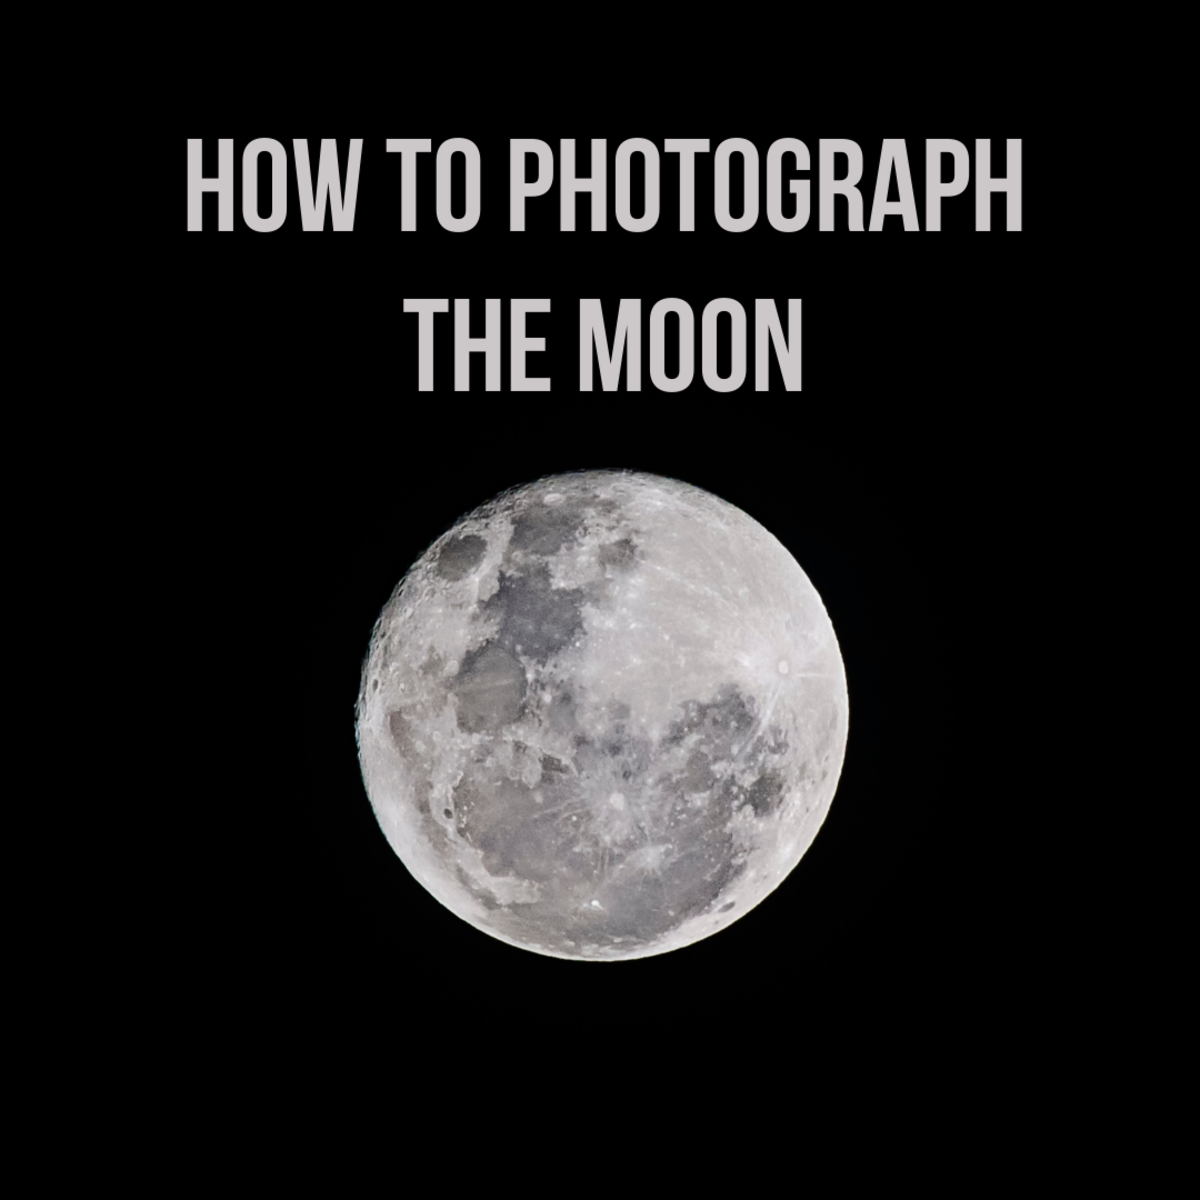 A guide to photographing the moon